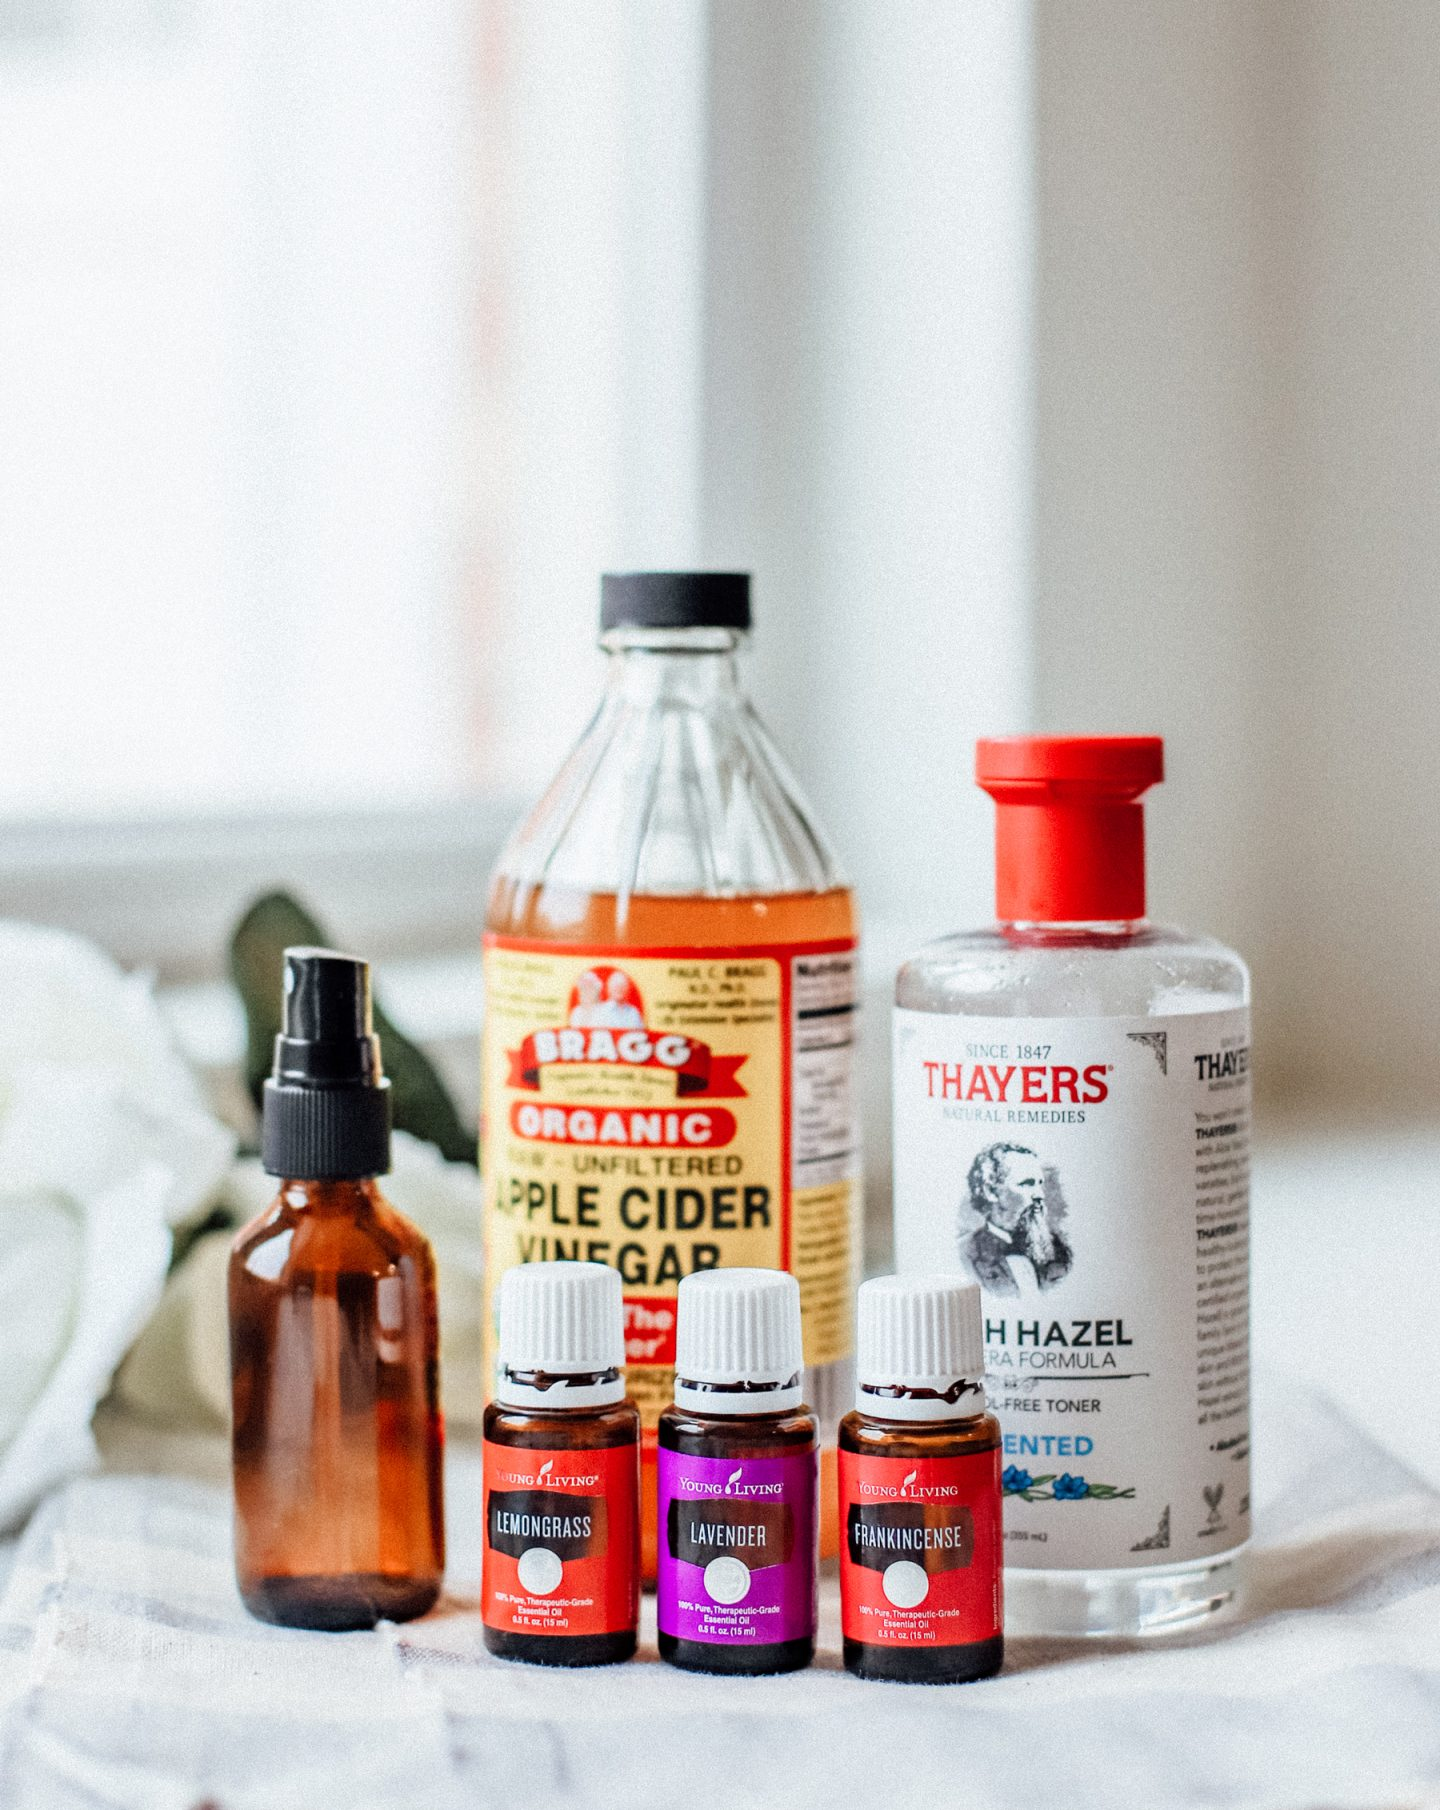 I am sharing my DIY toner for glowing skin that contains only 3 ingredients, and contains essential oils, apple cider vinegar, and witch hazel!